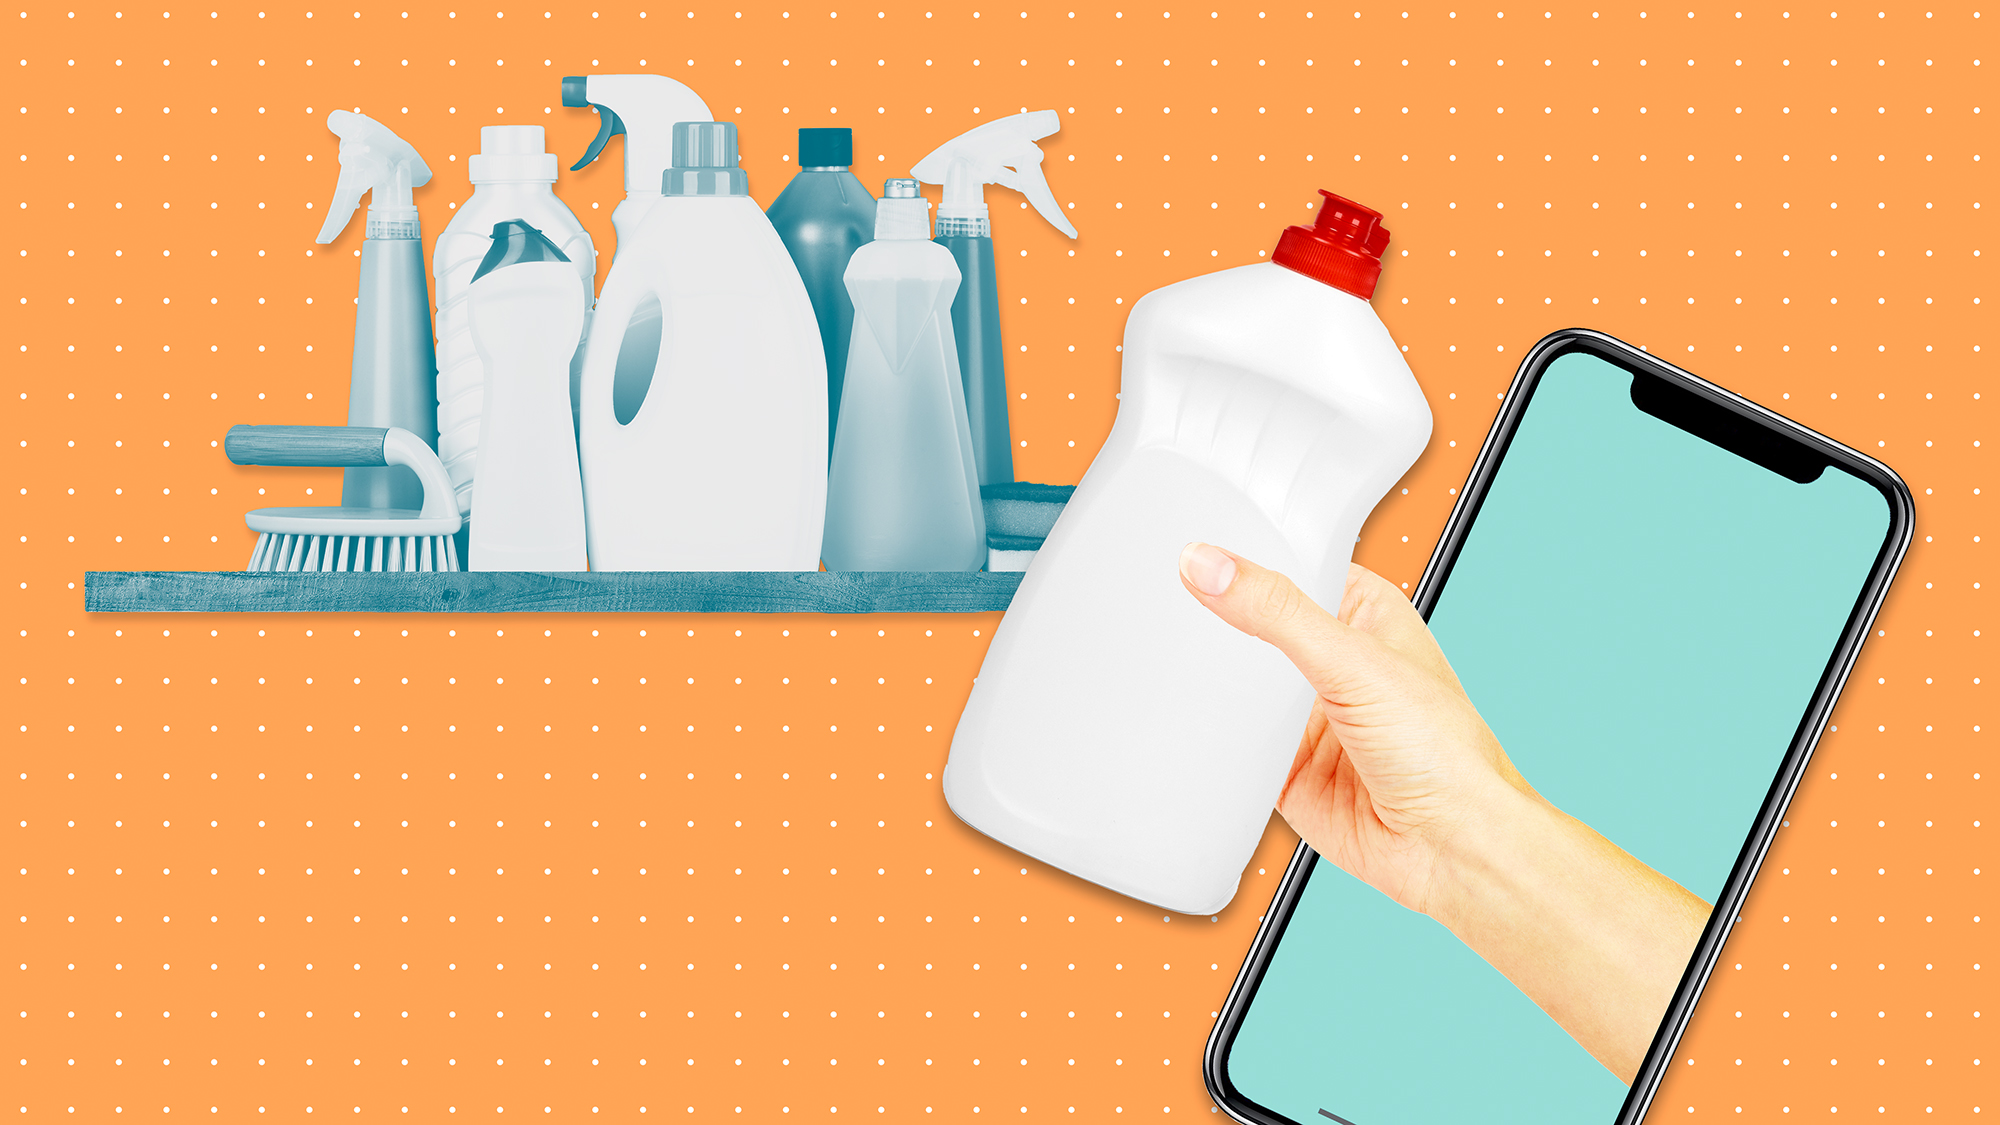 a shelf with cleaning products on a designed background with a hand coming out of a phone returning a bottle of dish soap to the shelf